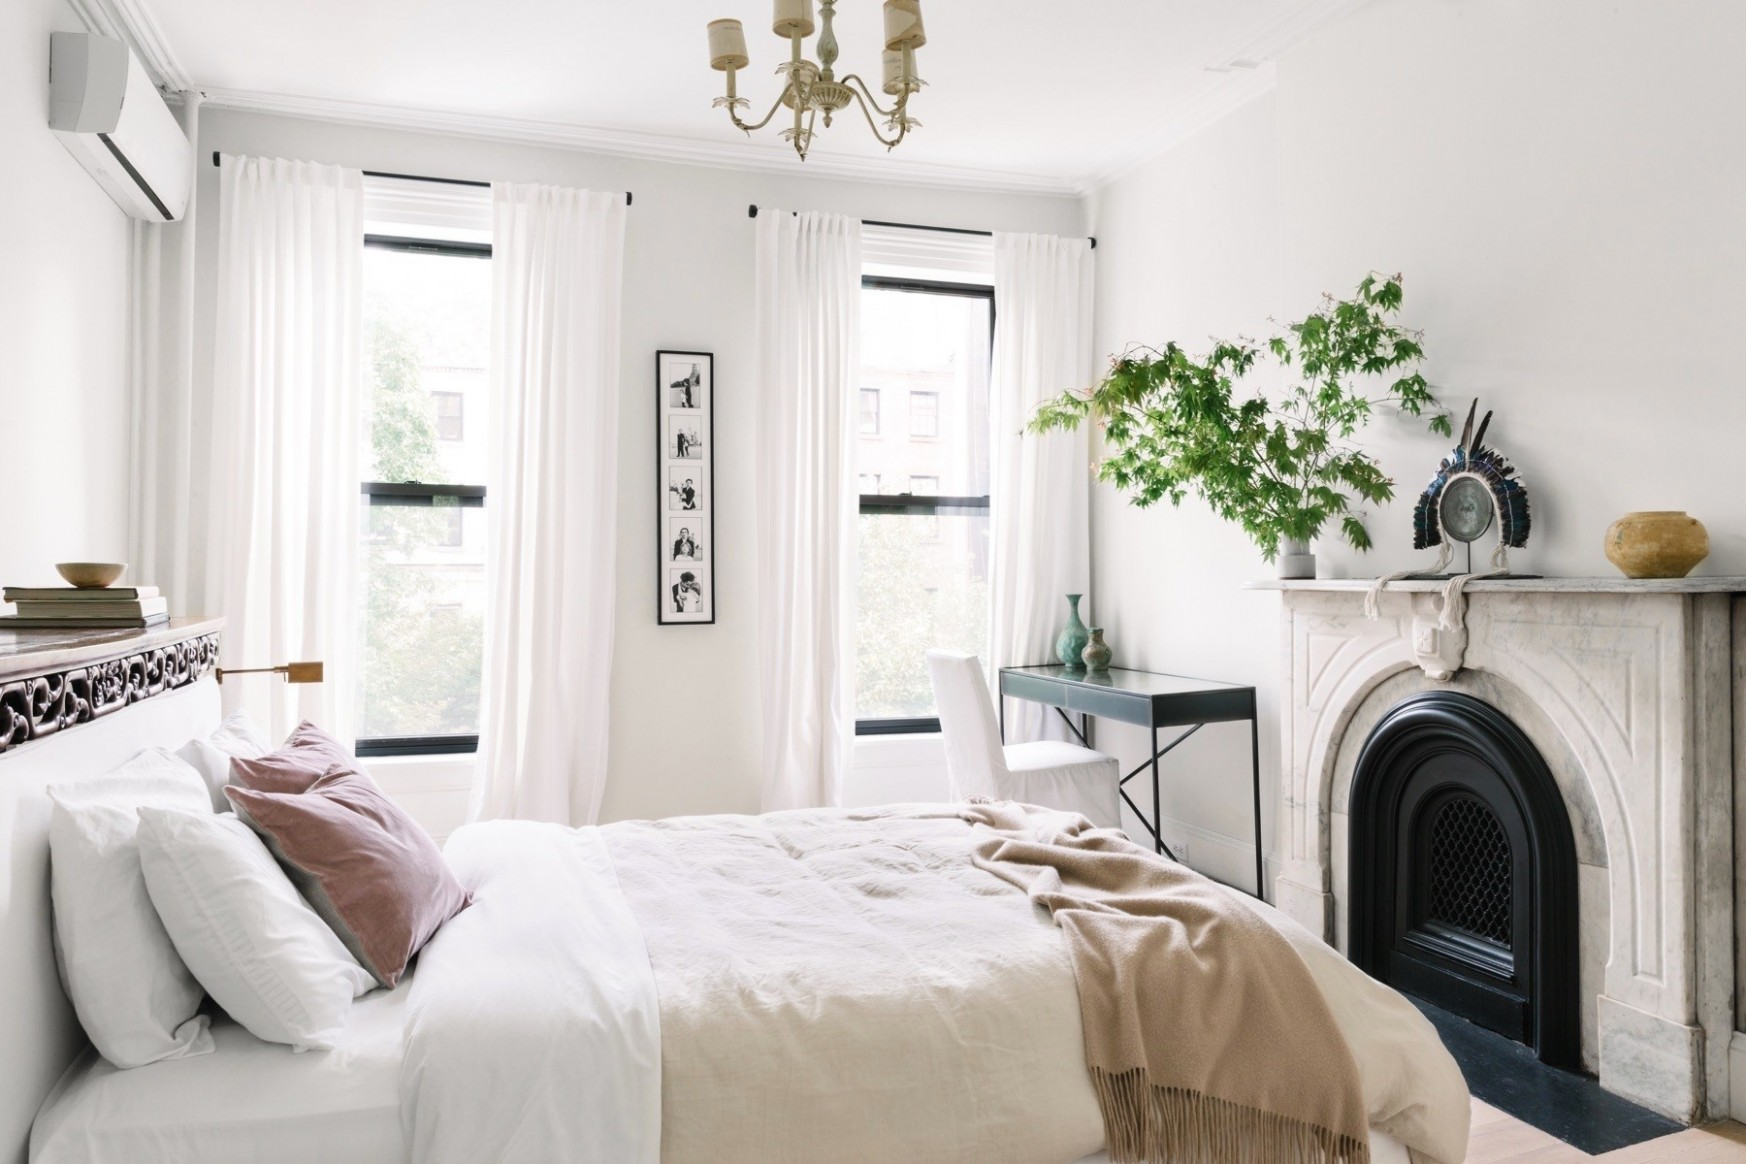 Small Bedroom Design Ideas For Every Style - See It Now - Lonny - Small Bedroom Ideas Queen Bed